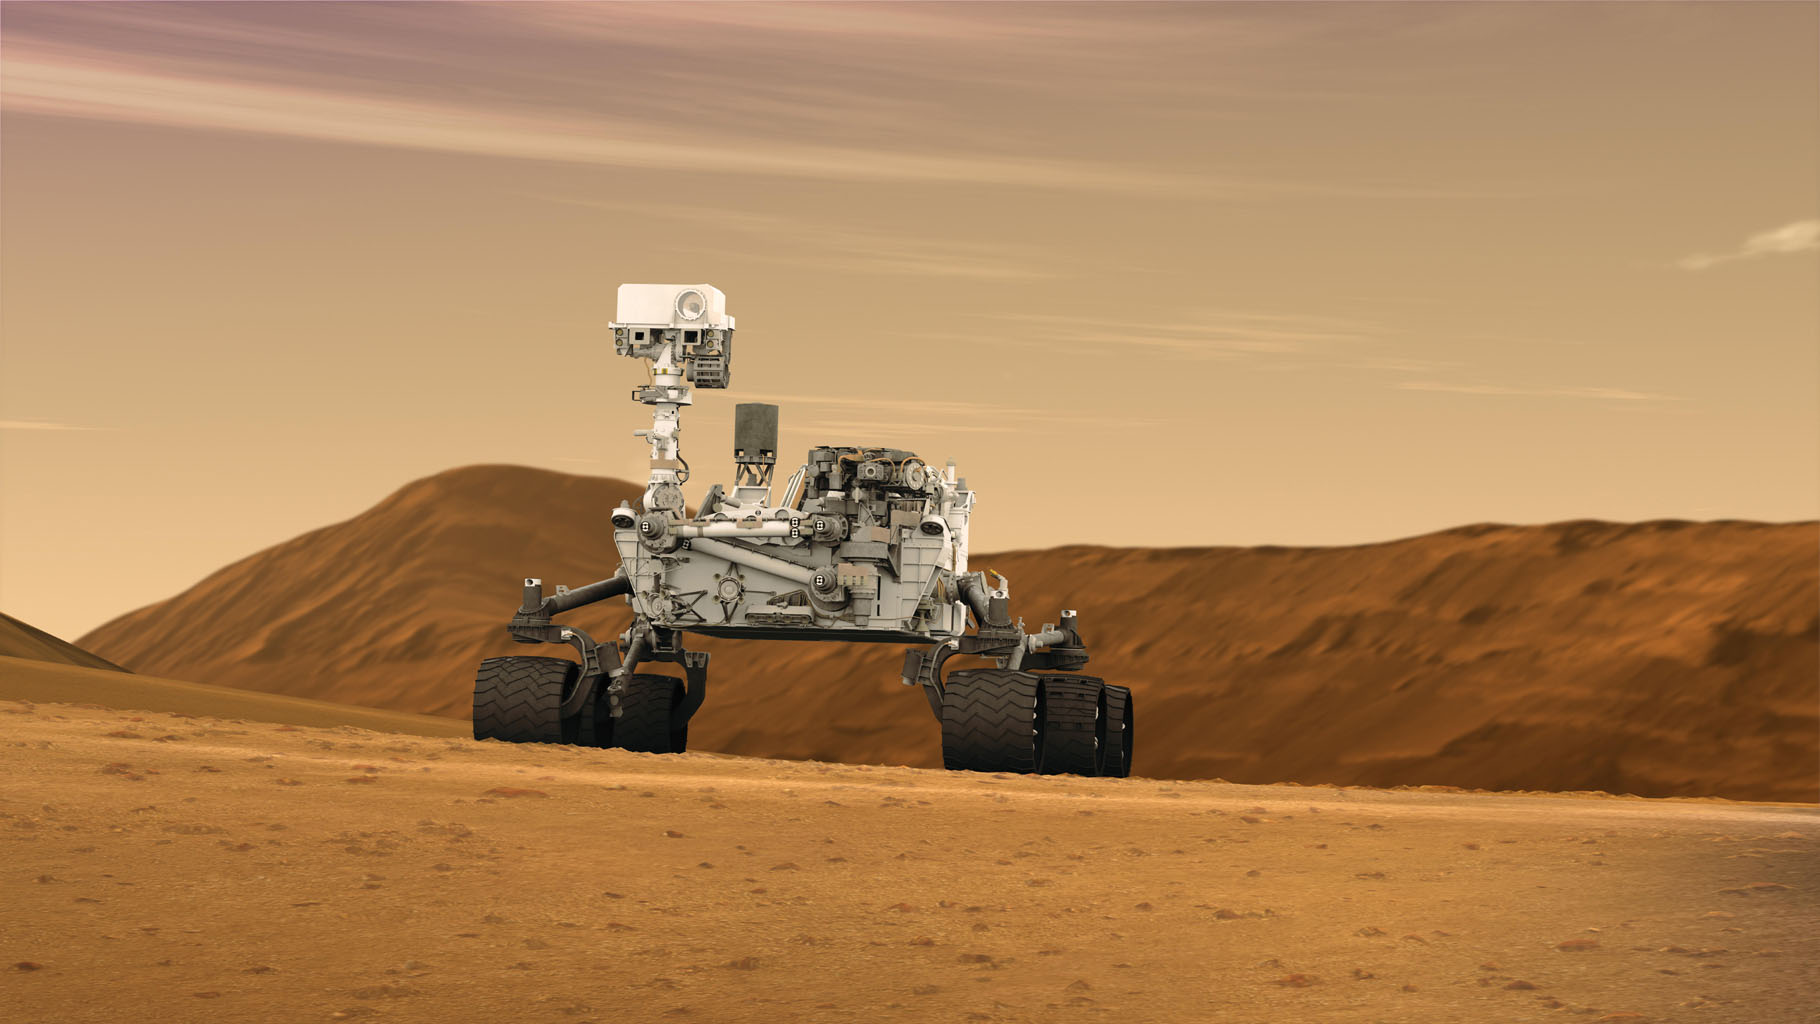 This artist concept features NASA's Mars Science Laboratory Curiosity rover, a mobile robot for investigating Mars' past or present ability to sustain microbial life. Curiosity is being tested in preparation for launch in the fall of 2011.